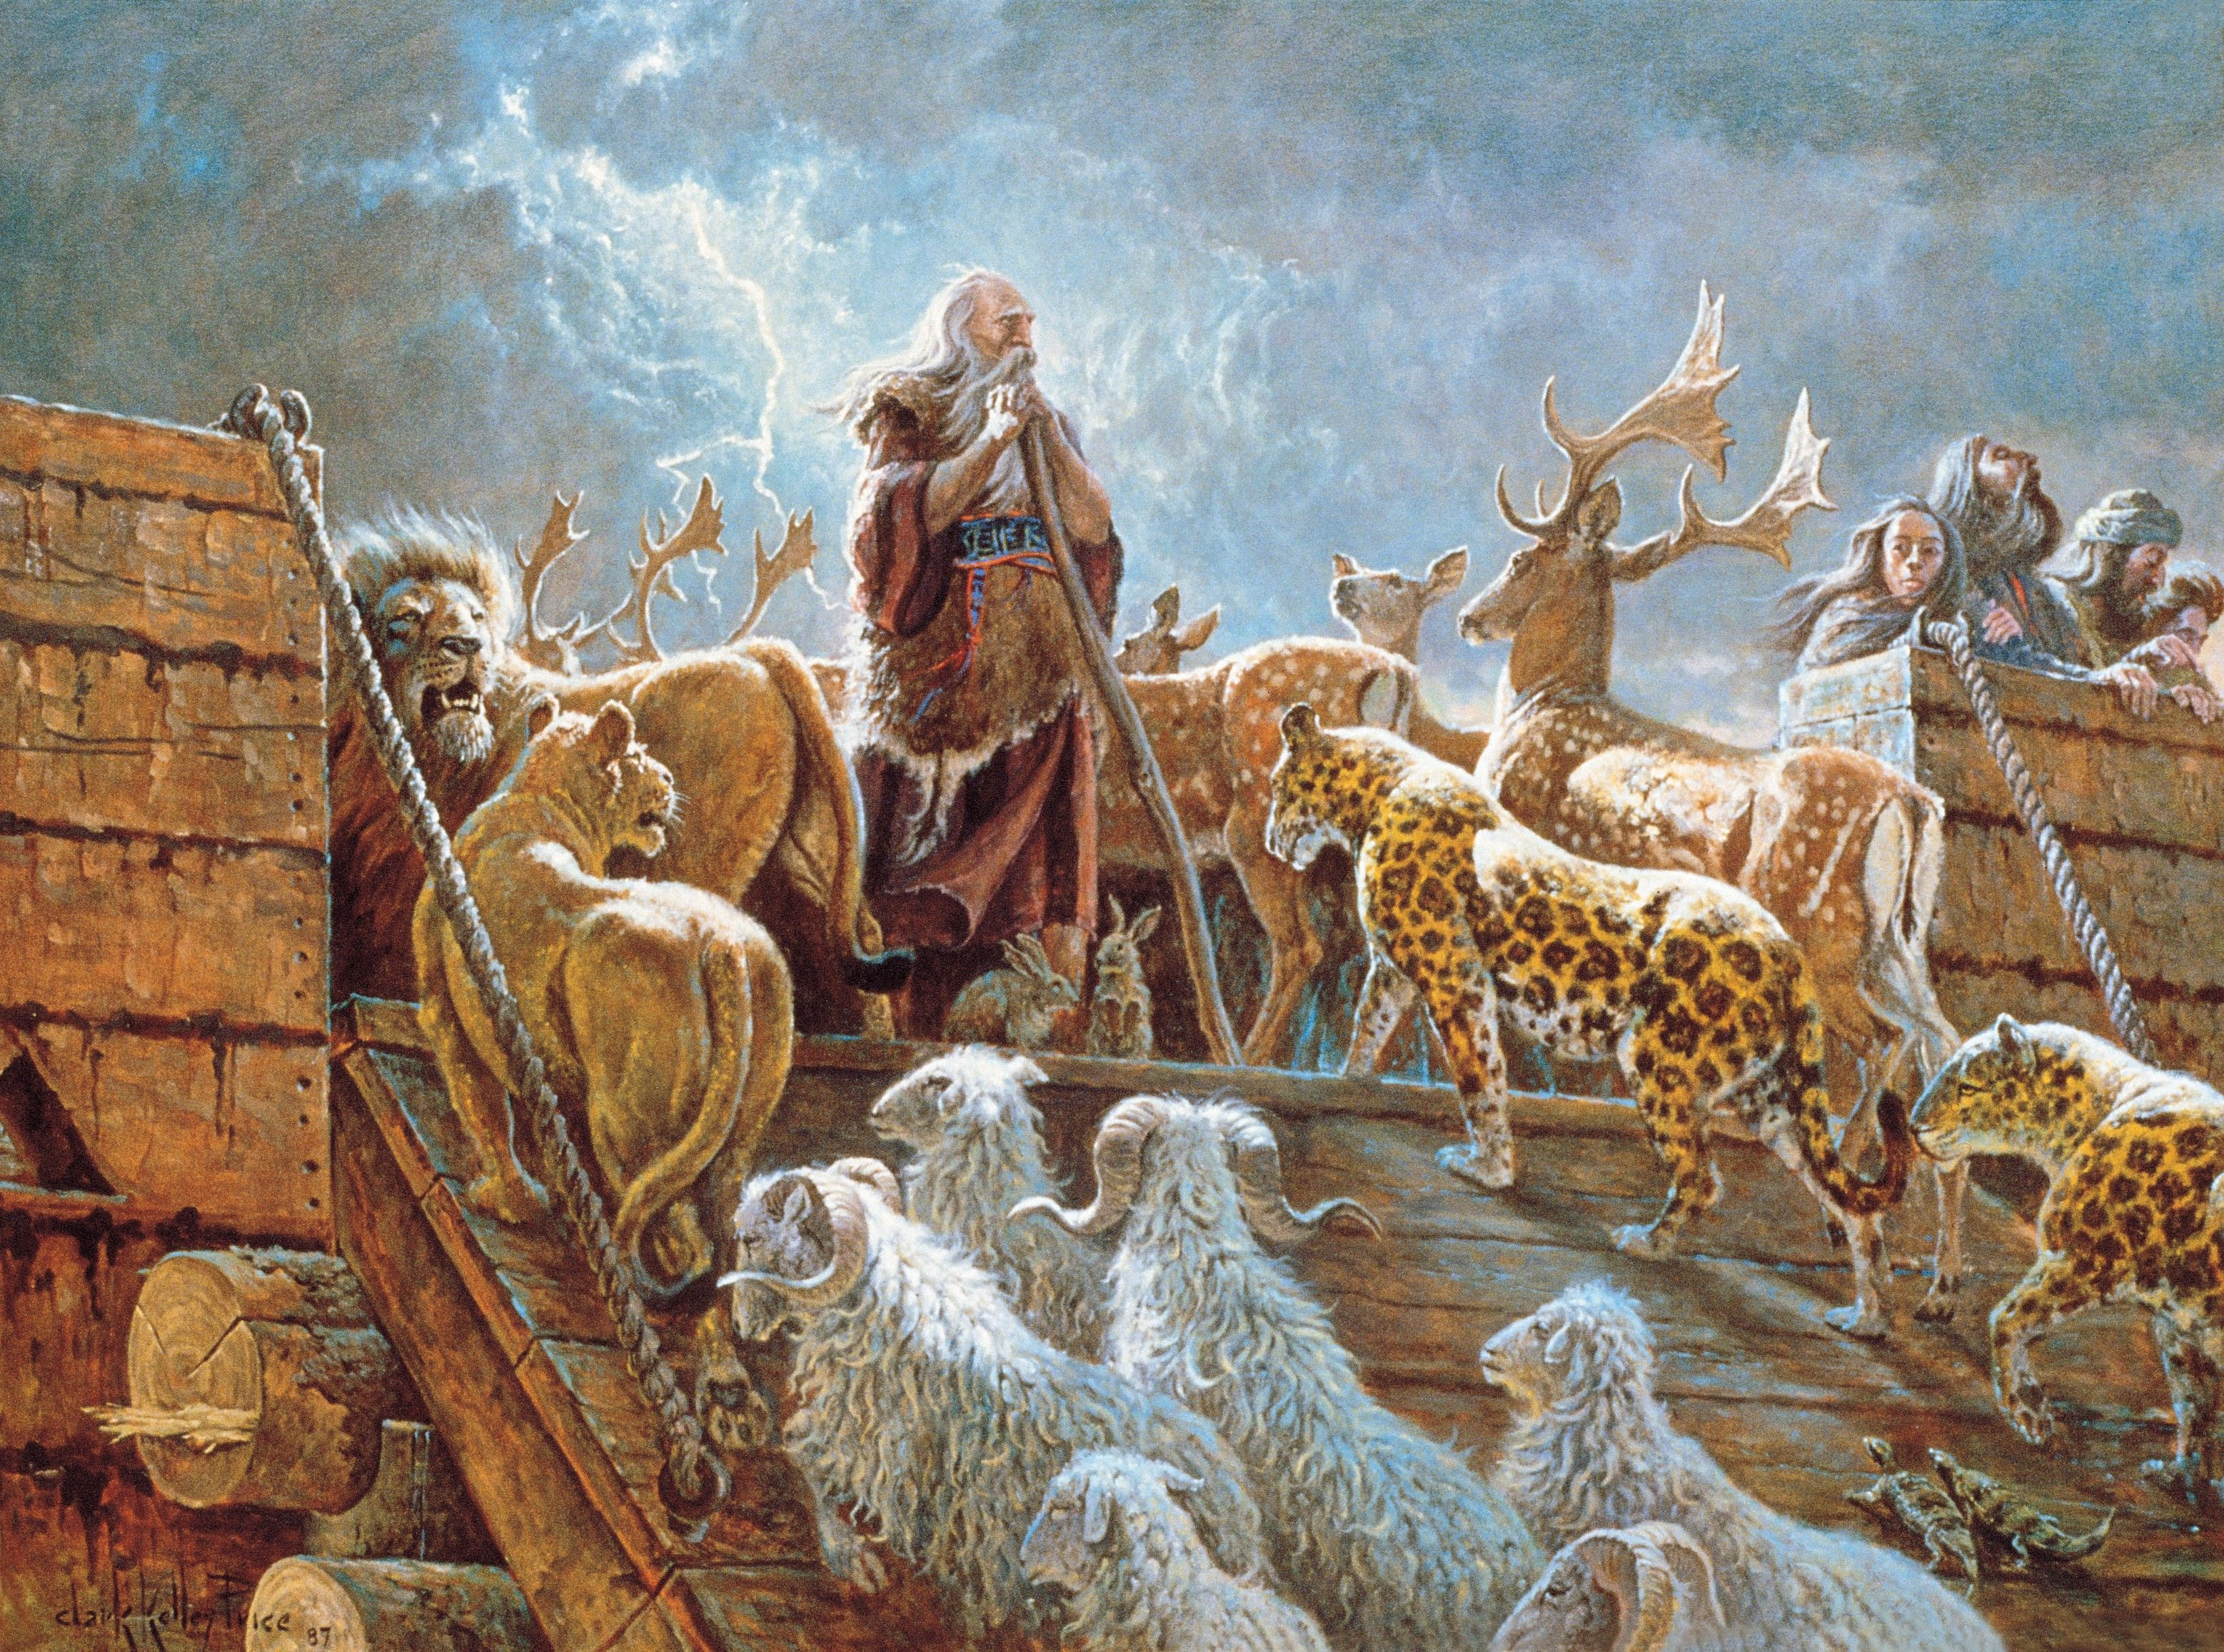 Noah and the Ark with Animals (The Lord Fulfilleth All His Words)